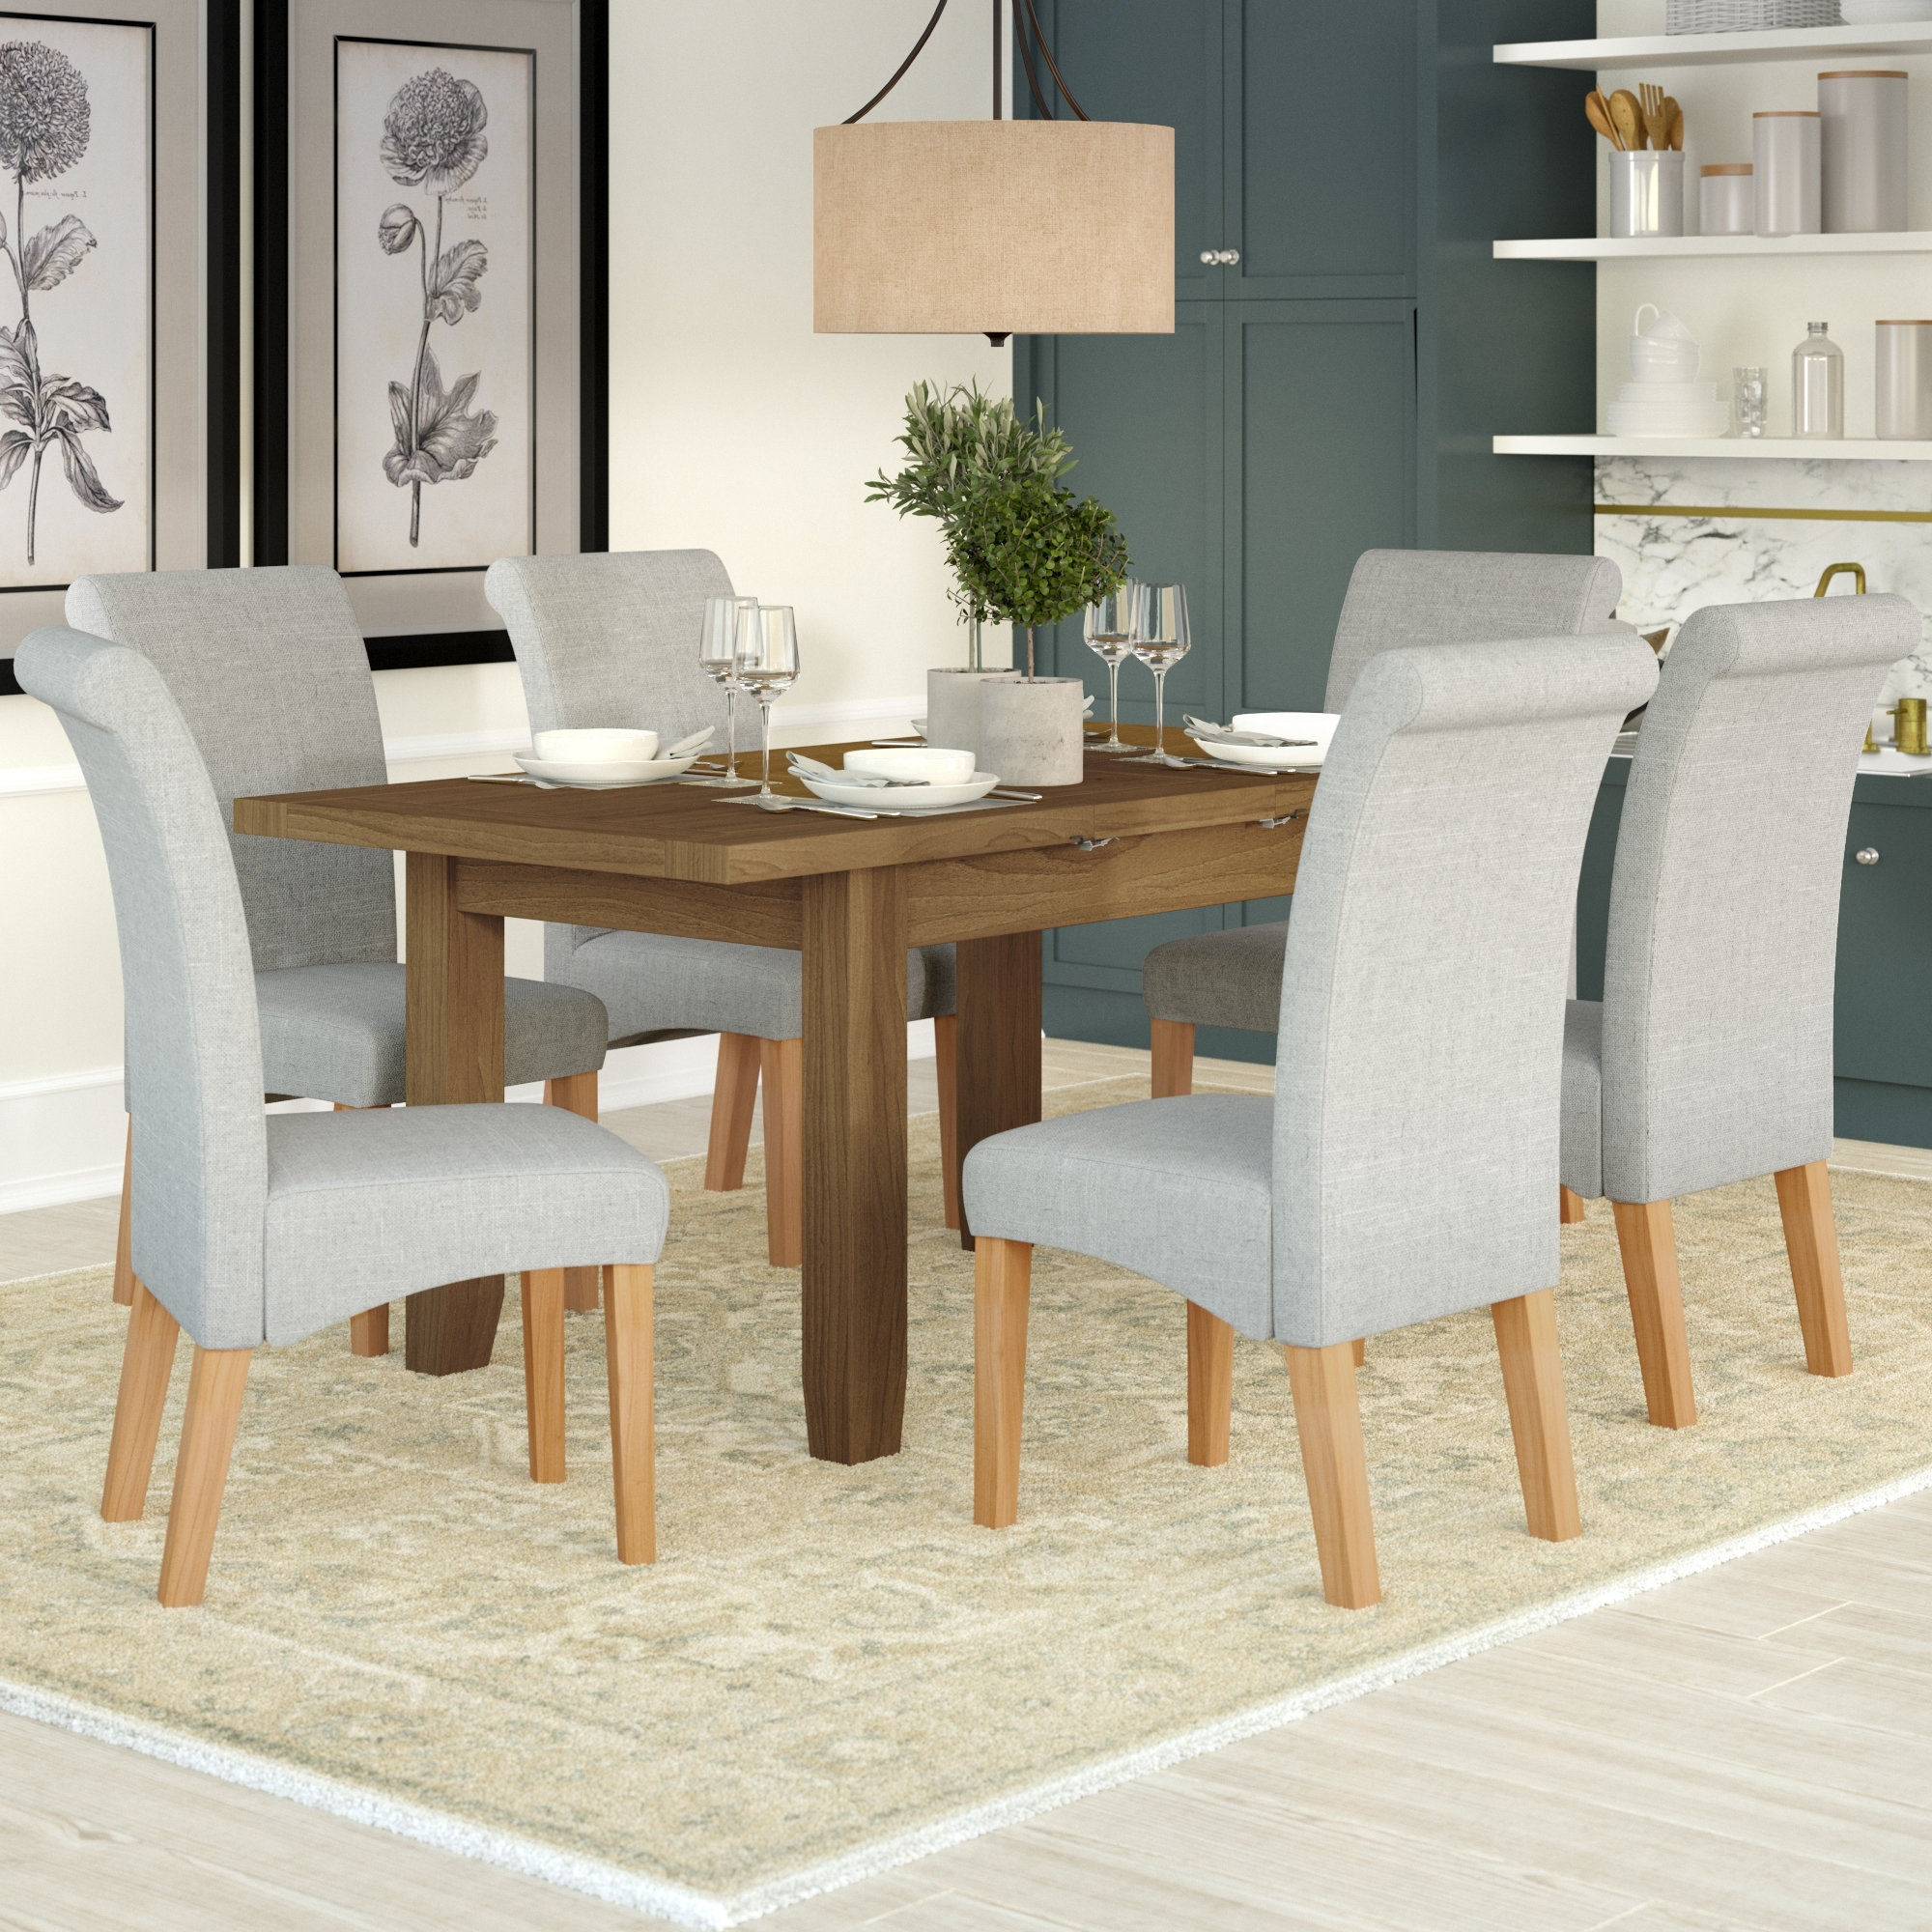 Well Known Extendable Dining Tables With 6 Chairs Pertaining To Three Posts Berwick Extendable Dining Table And 6 Chairs & Reviews (View 24 of 25)